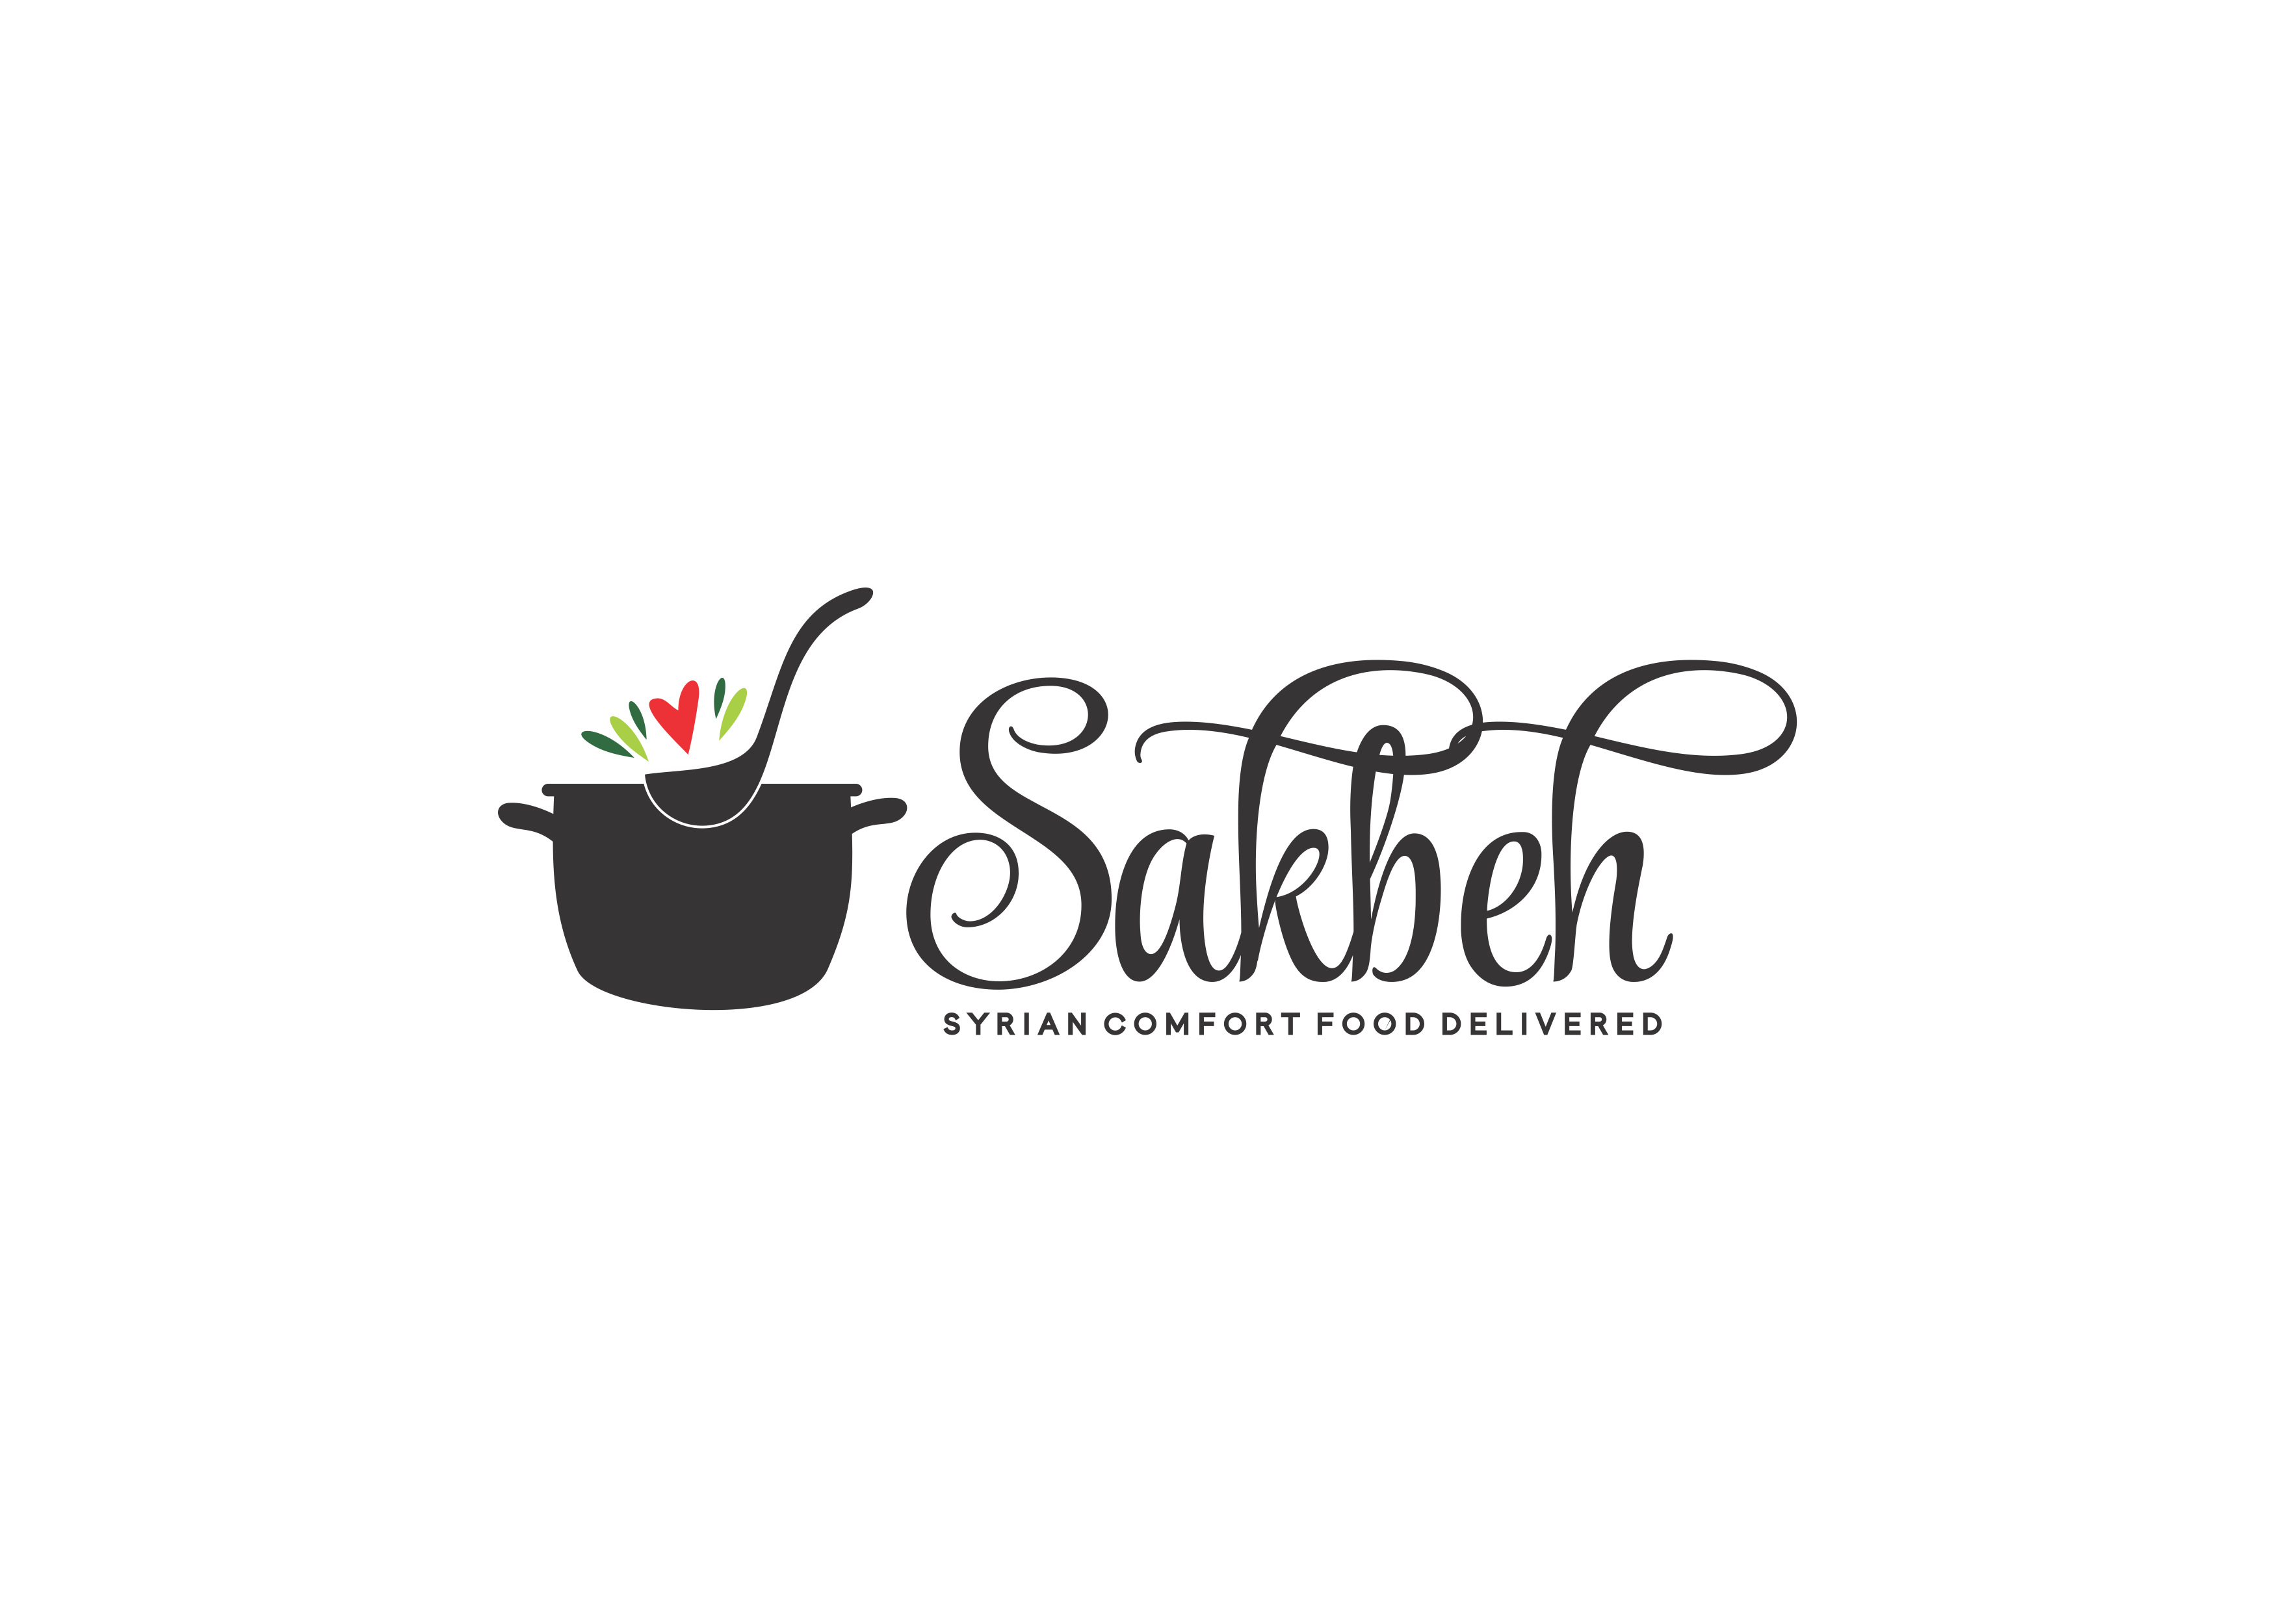 Food Delivery and Catering Logo